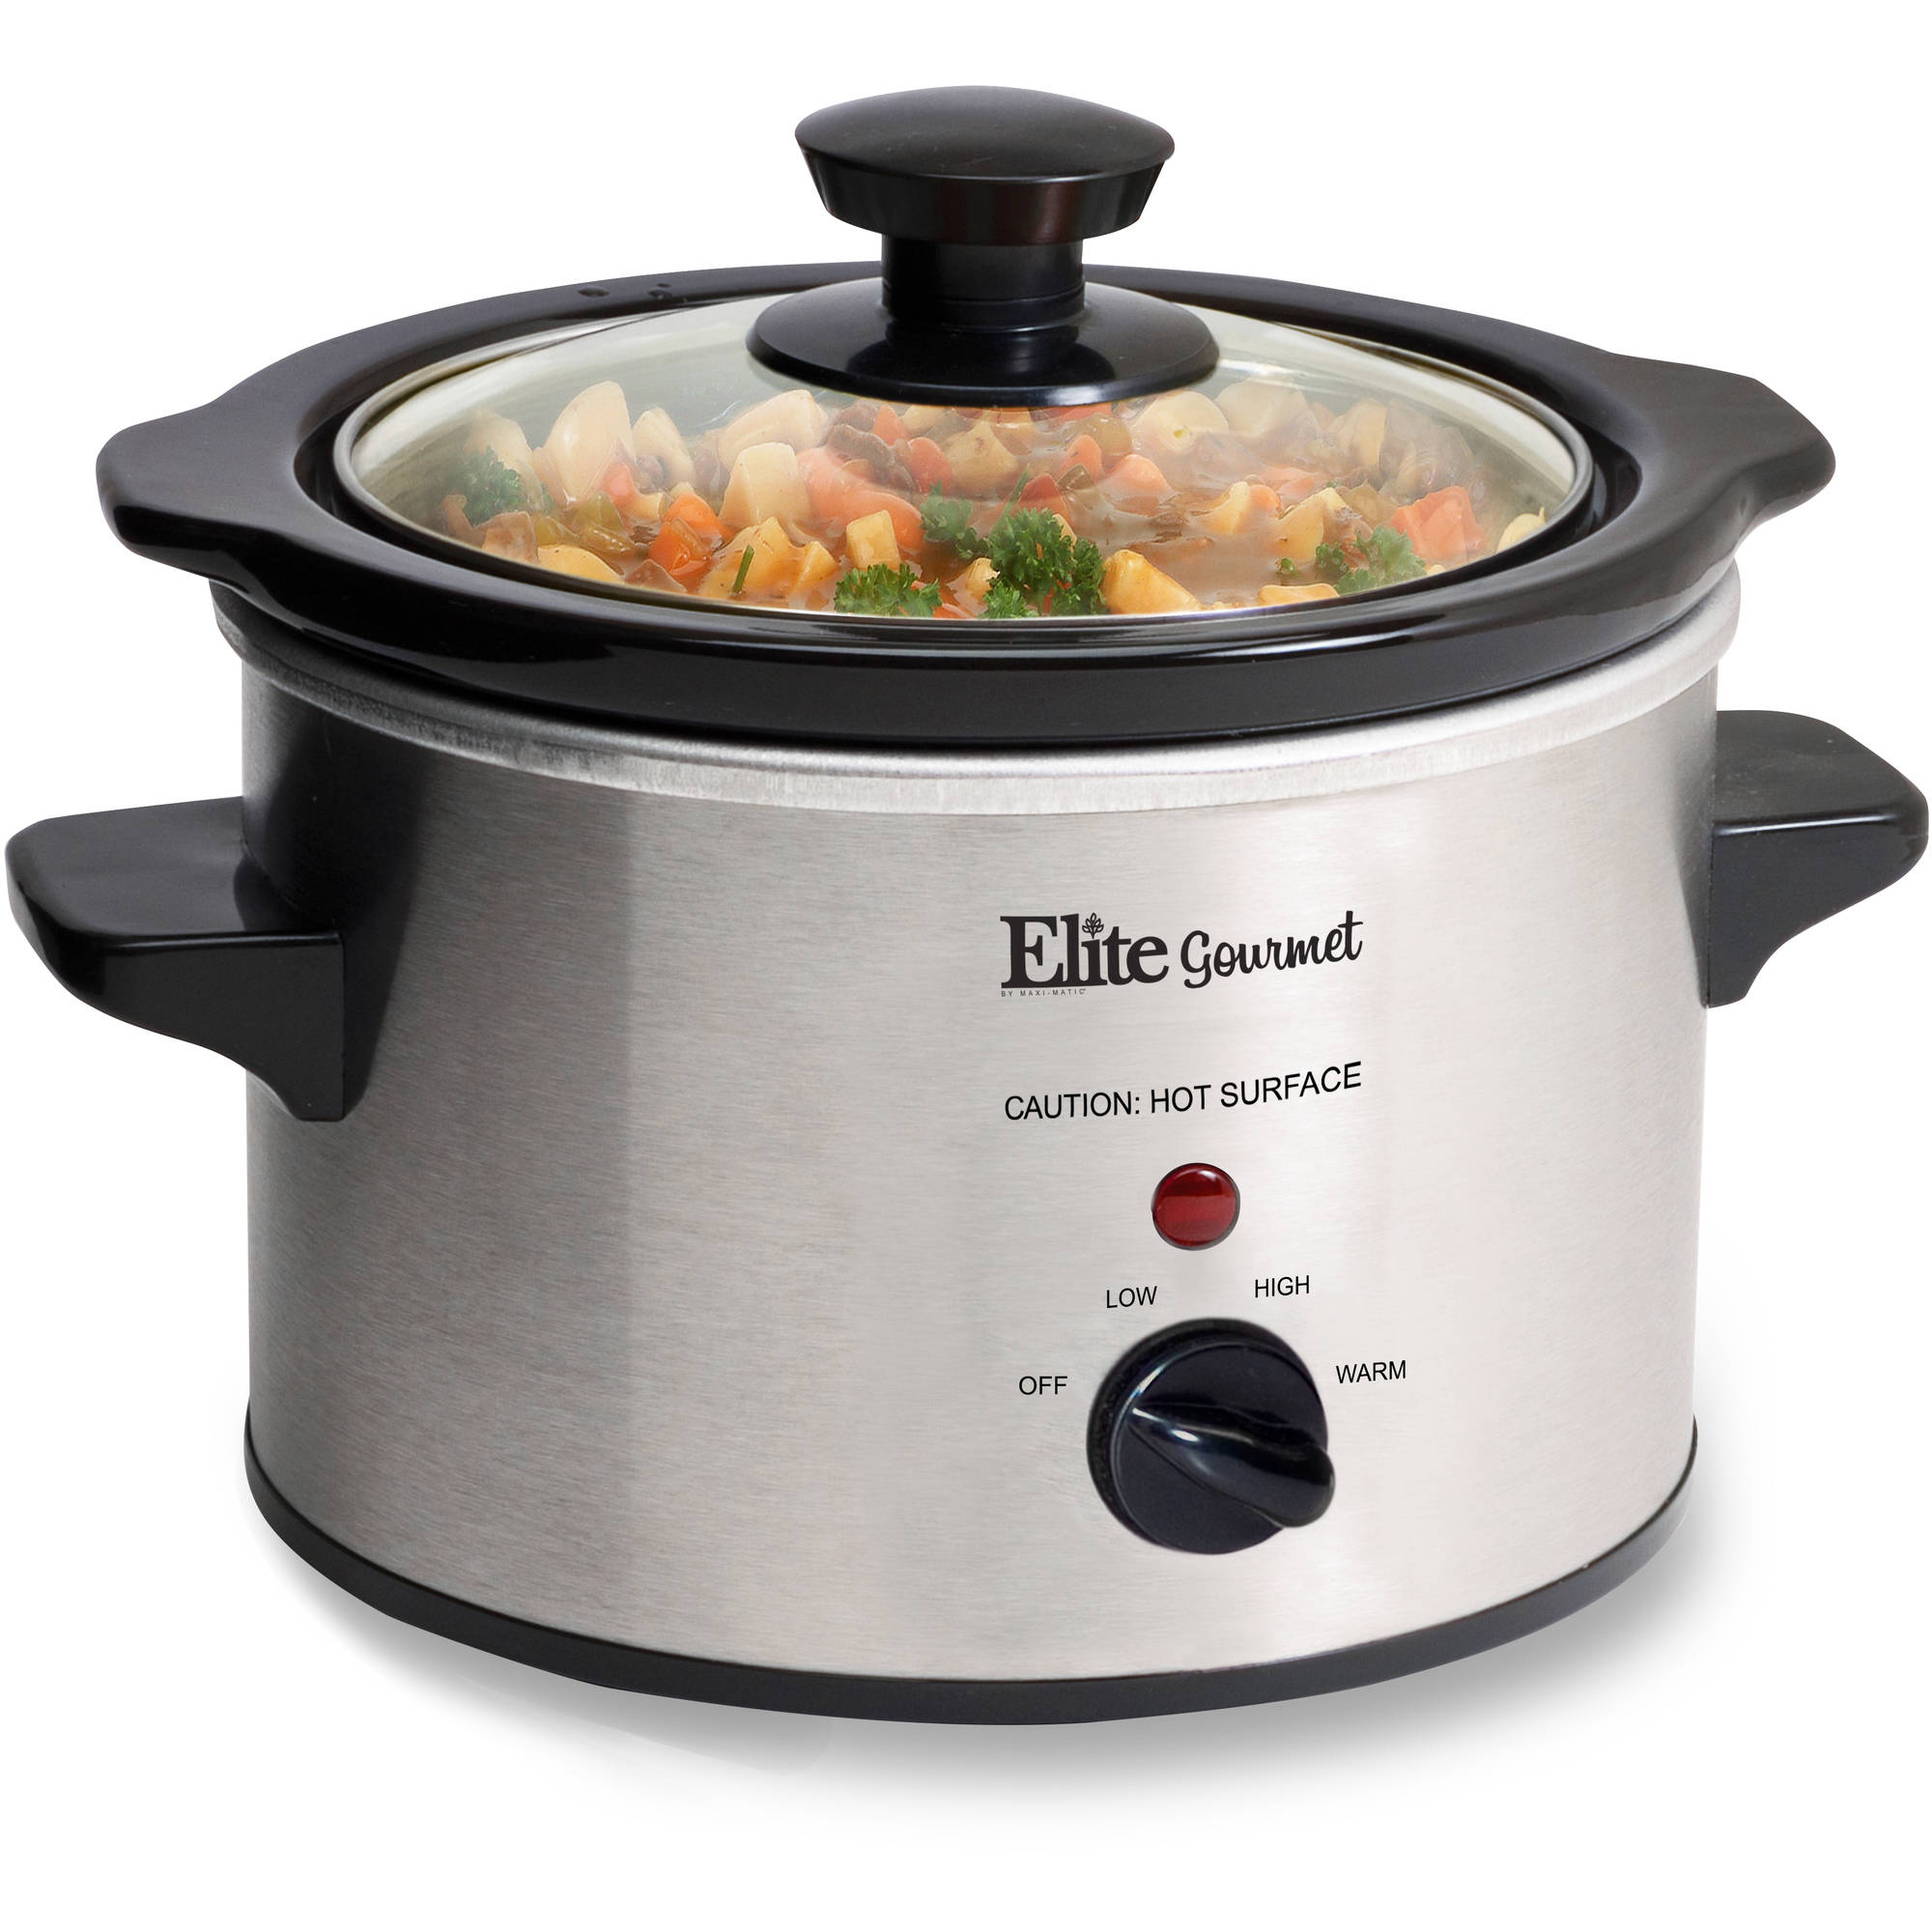 Elite Gourmet 1.5-qt Slow Cooker